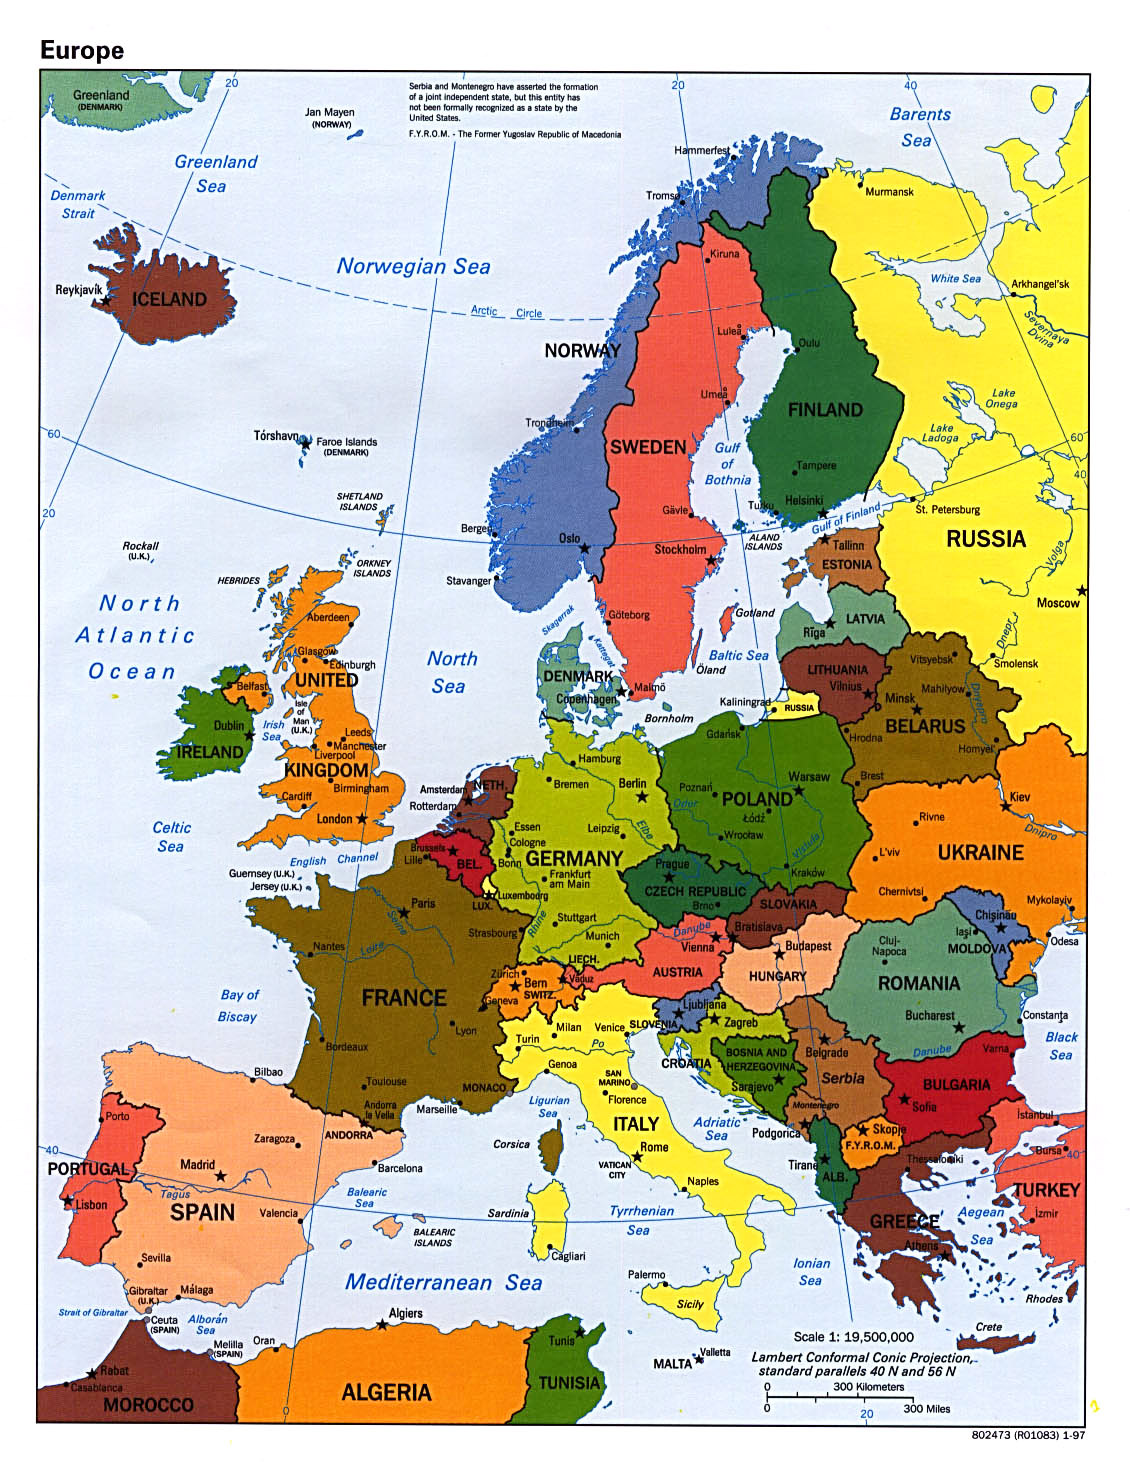 Detailed Political Map Of Europe With Capitals And Major Cities - Austria major cities map